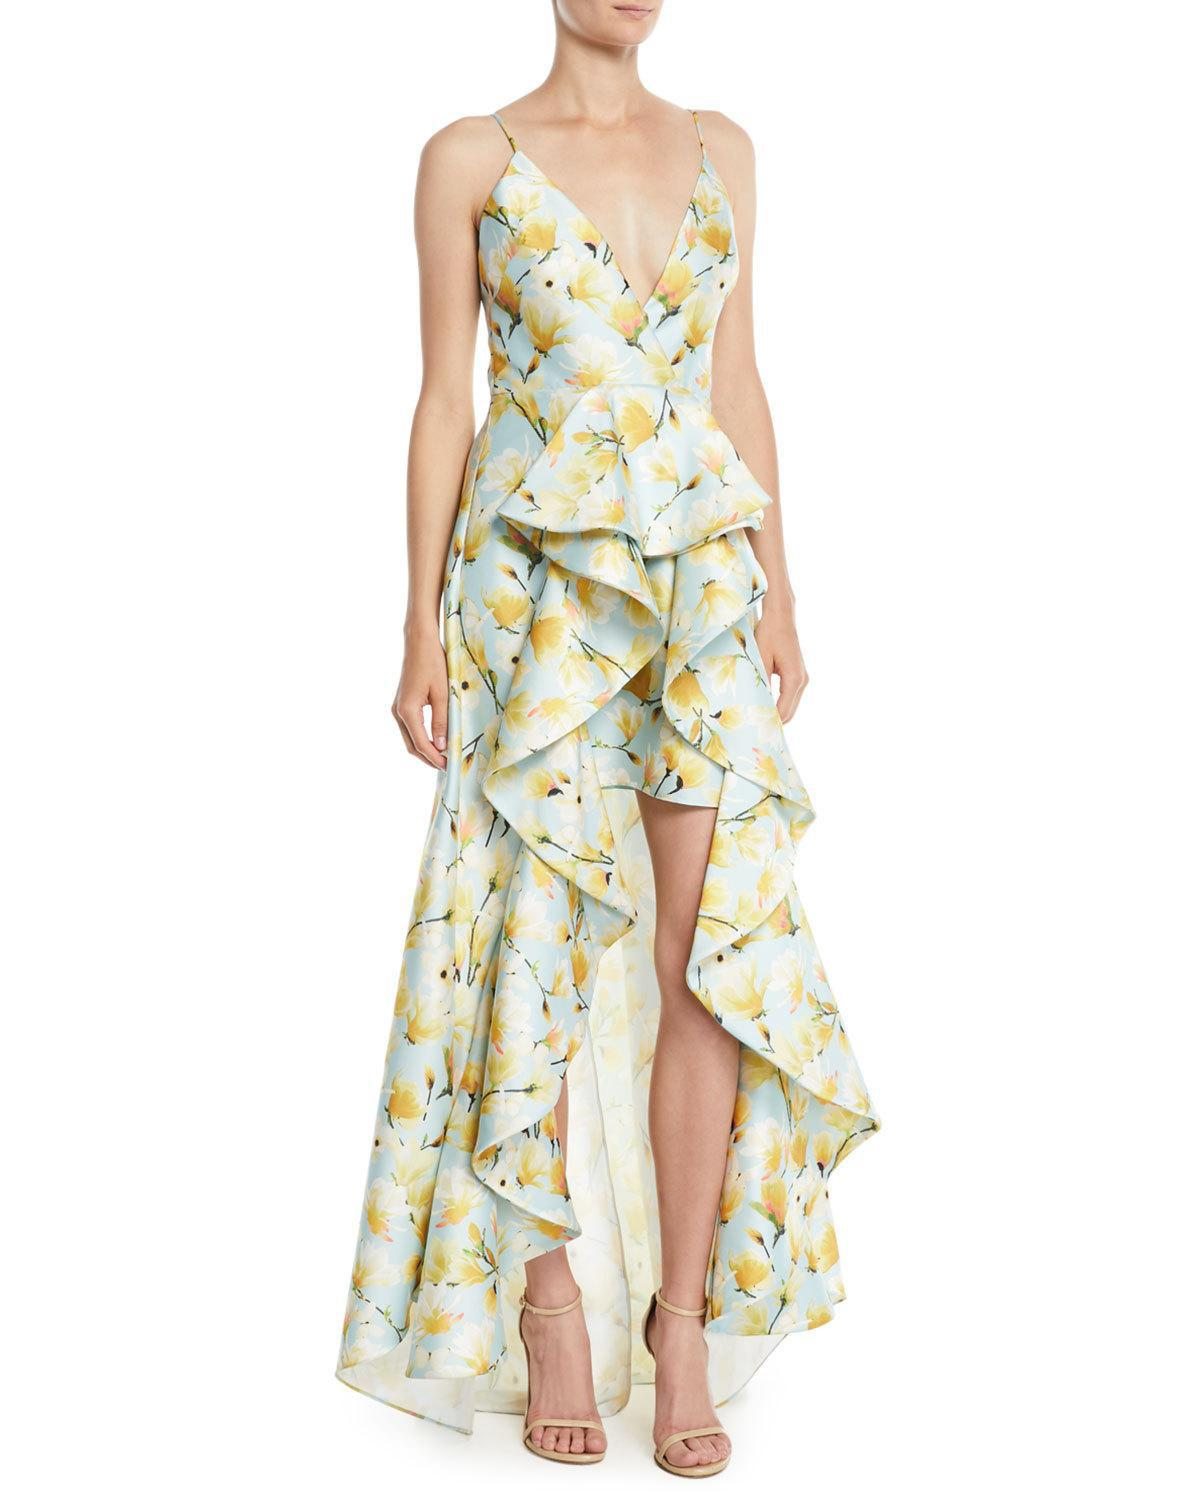 Lyst - Badgley Mischka Floral-print Mikado Ruffle High-low Gown in Blue